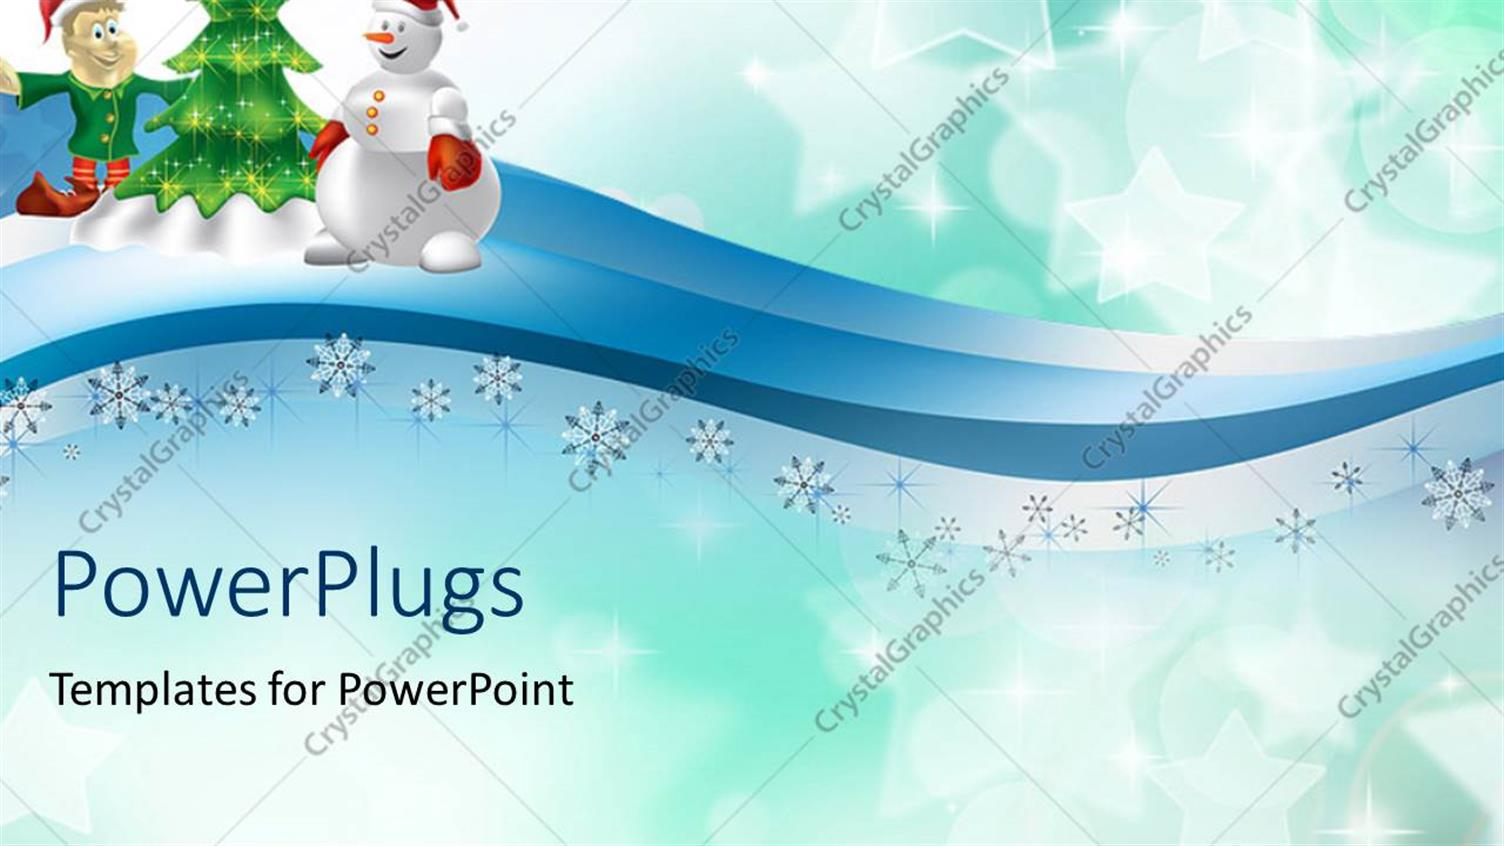 PowerPoint Template Displaying Holiday Depiction with Decorated Christmas Tree and Snow Flakes on Blue Background